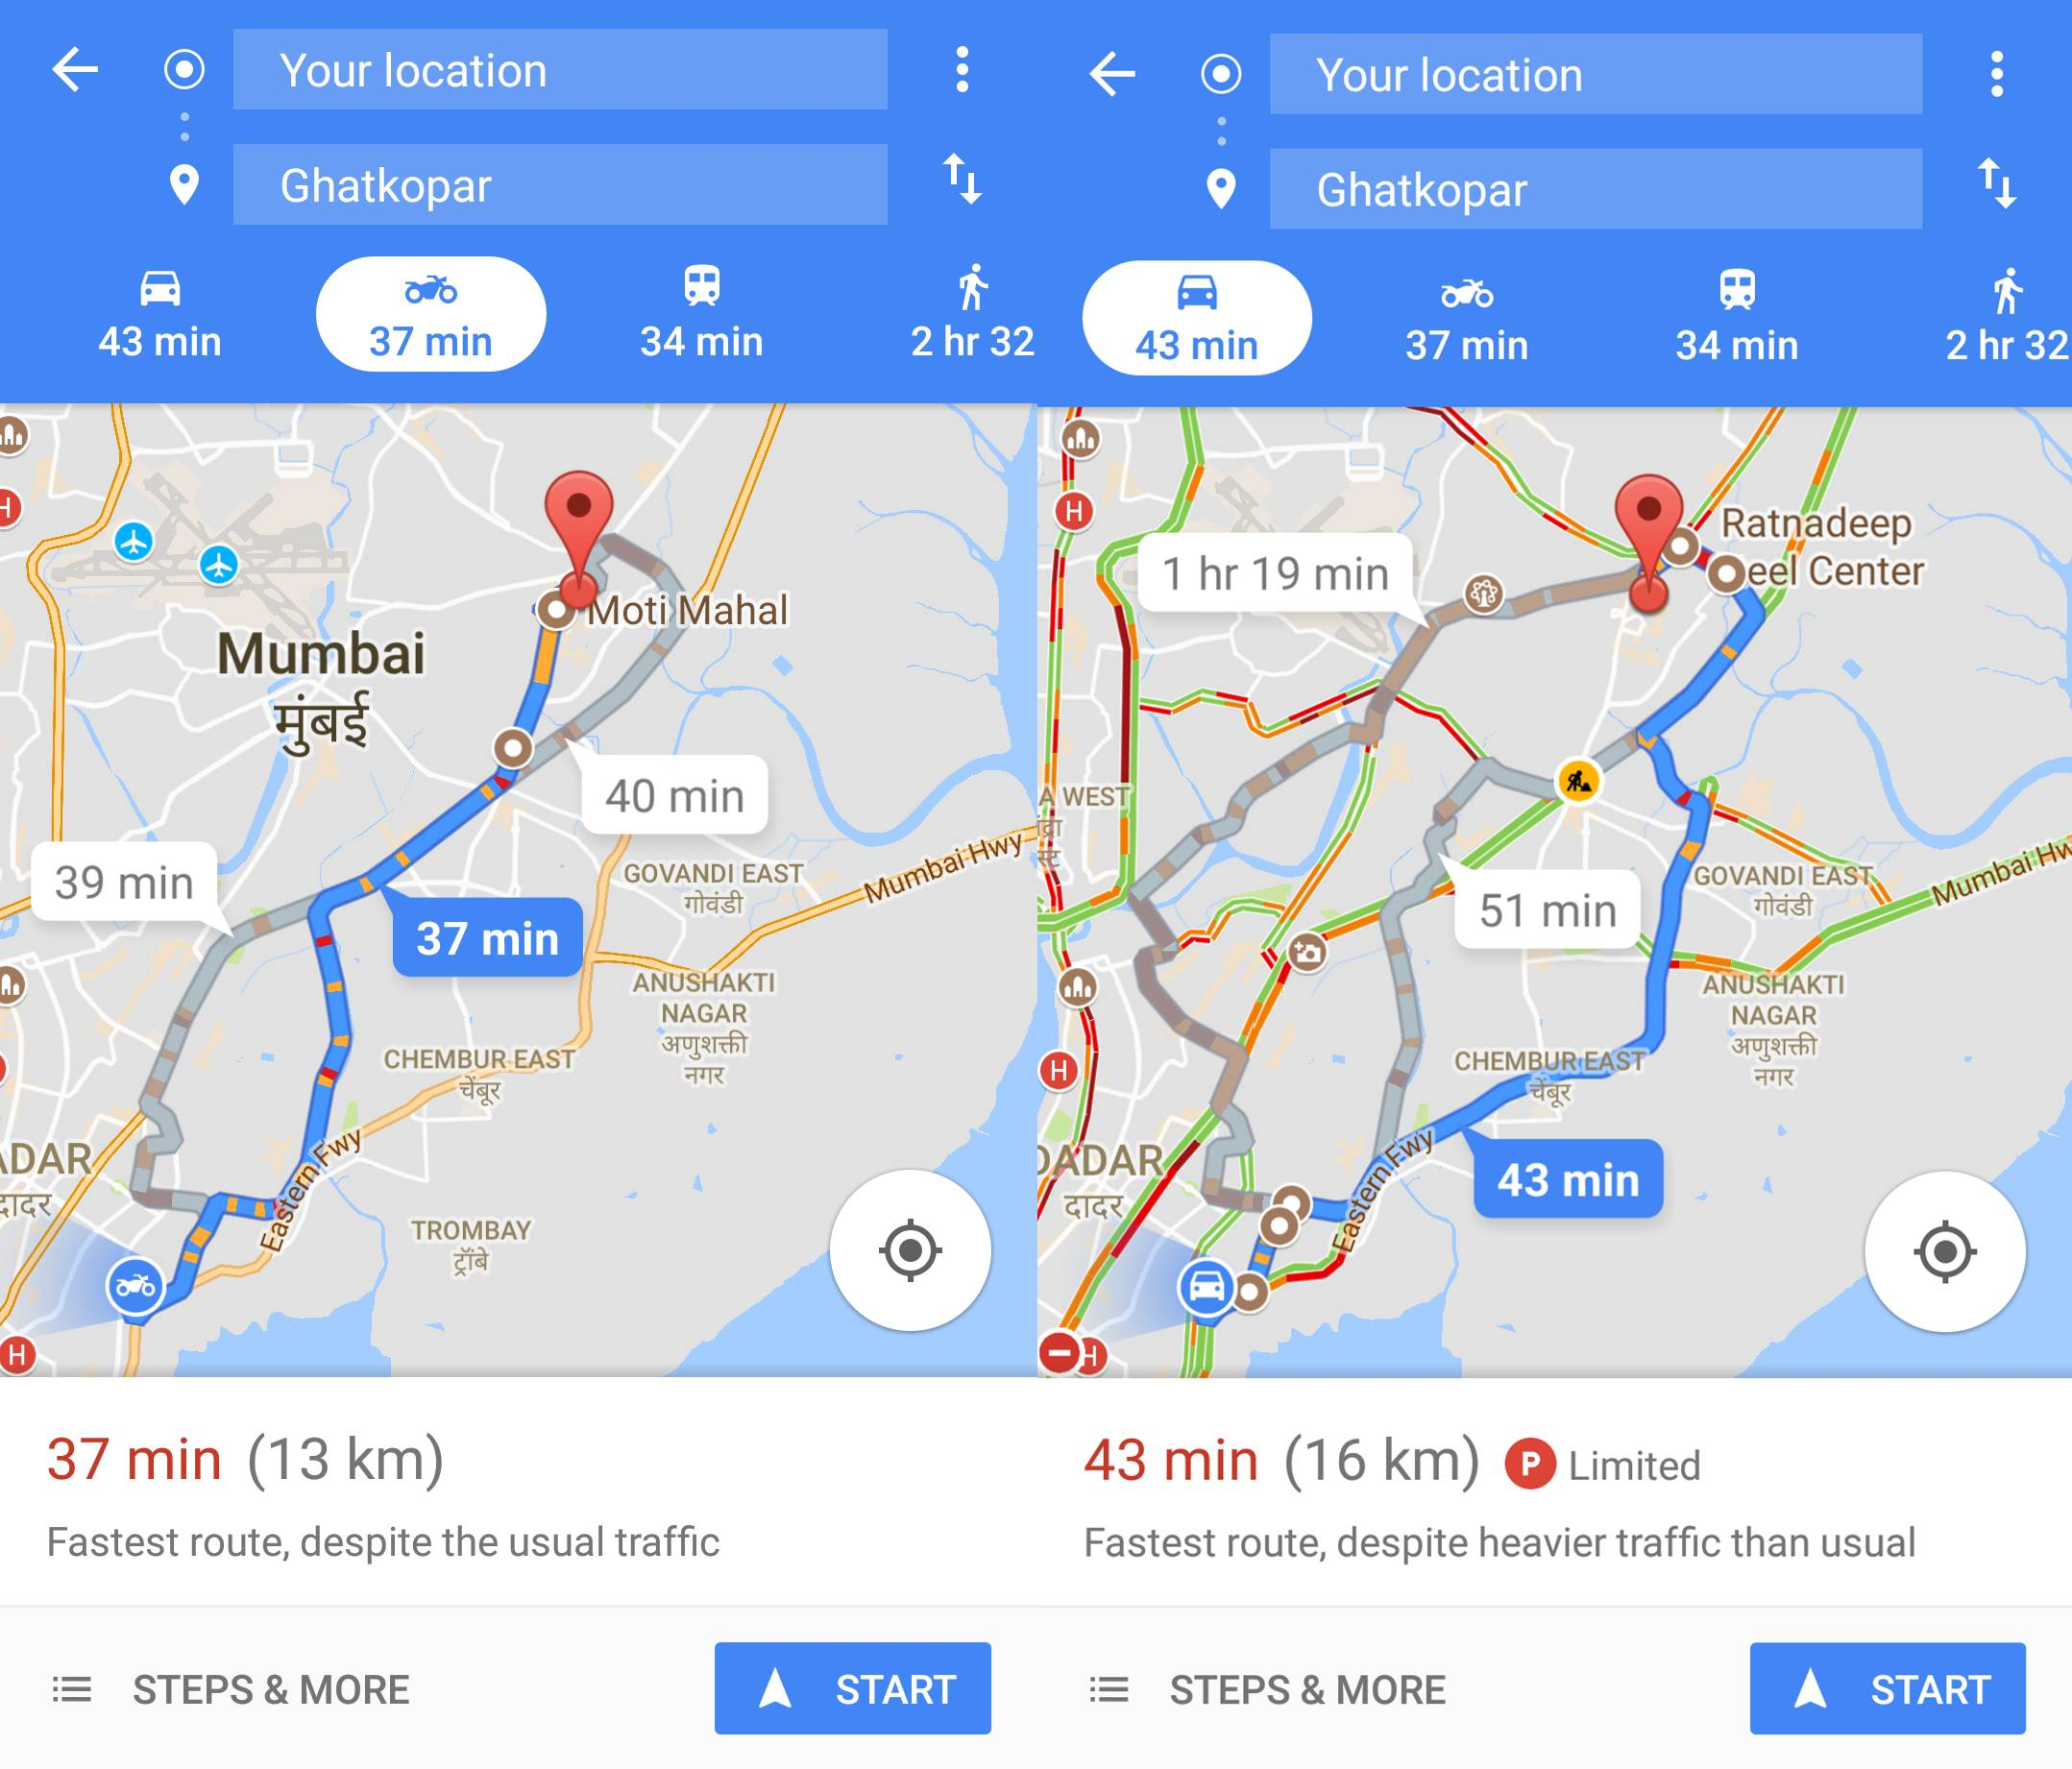 Google Maps introduces new Motorcycle mode in India